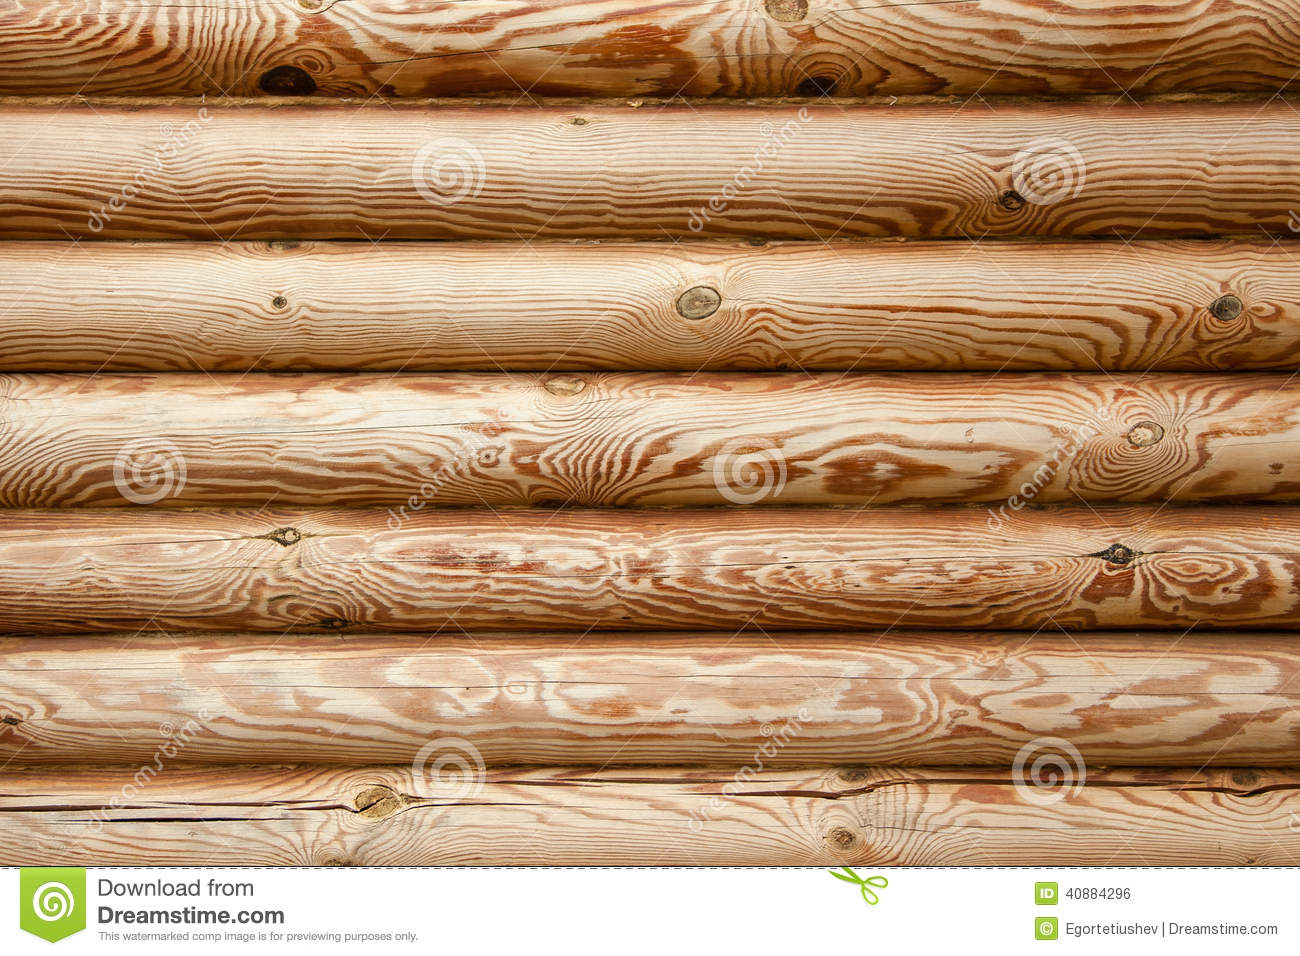 Logs wooden house art of wood construction background texture with